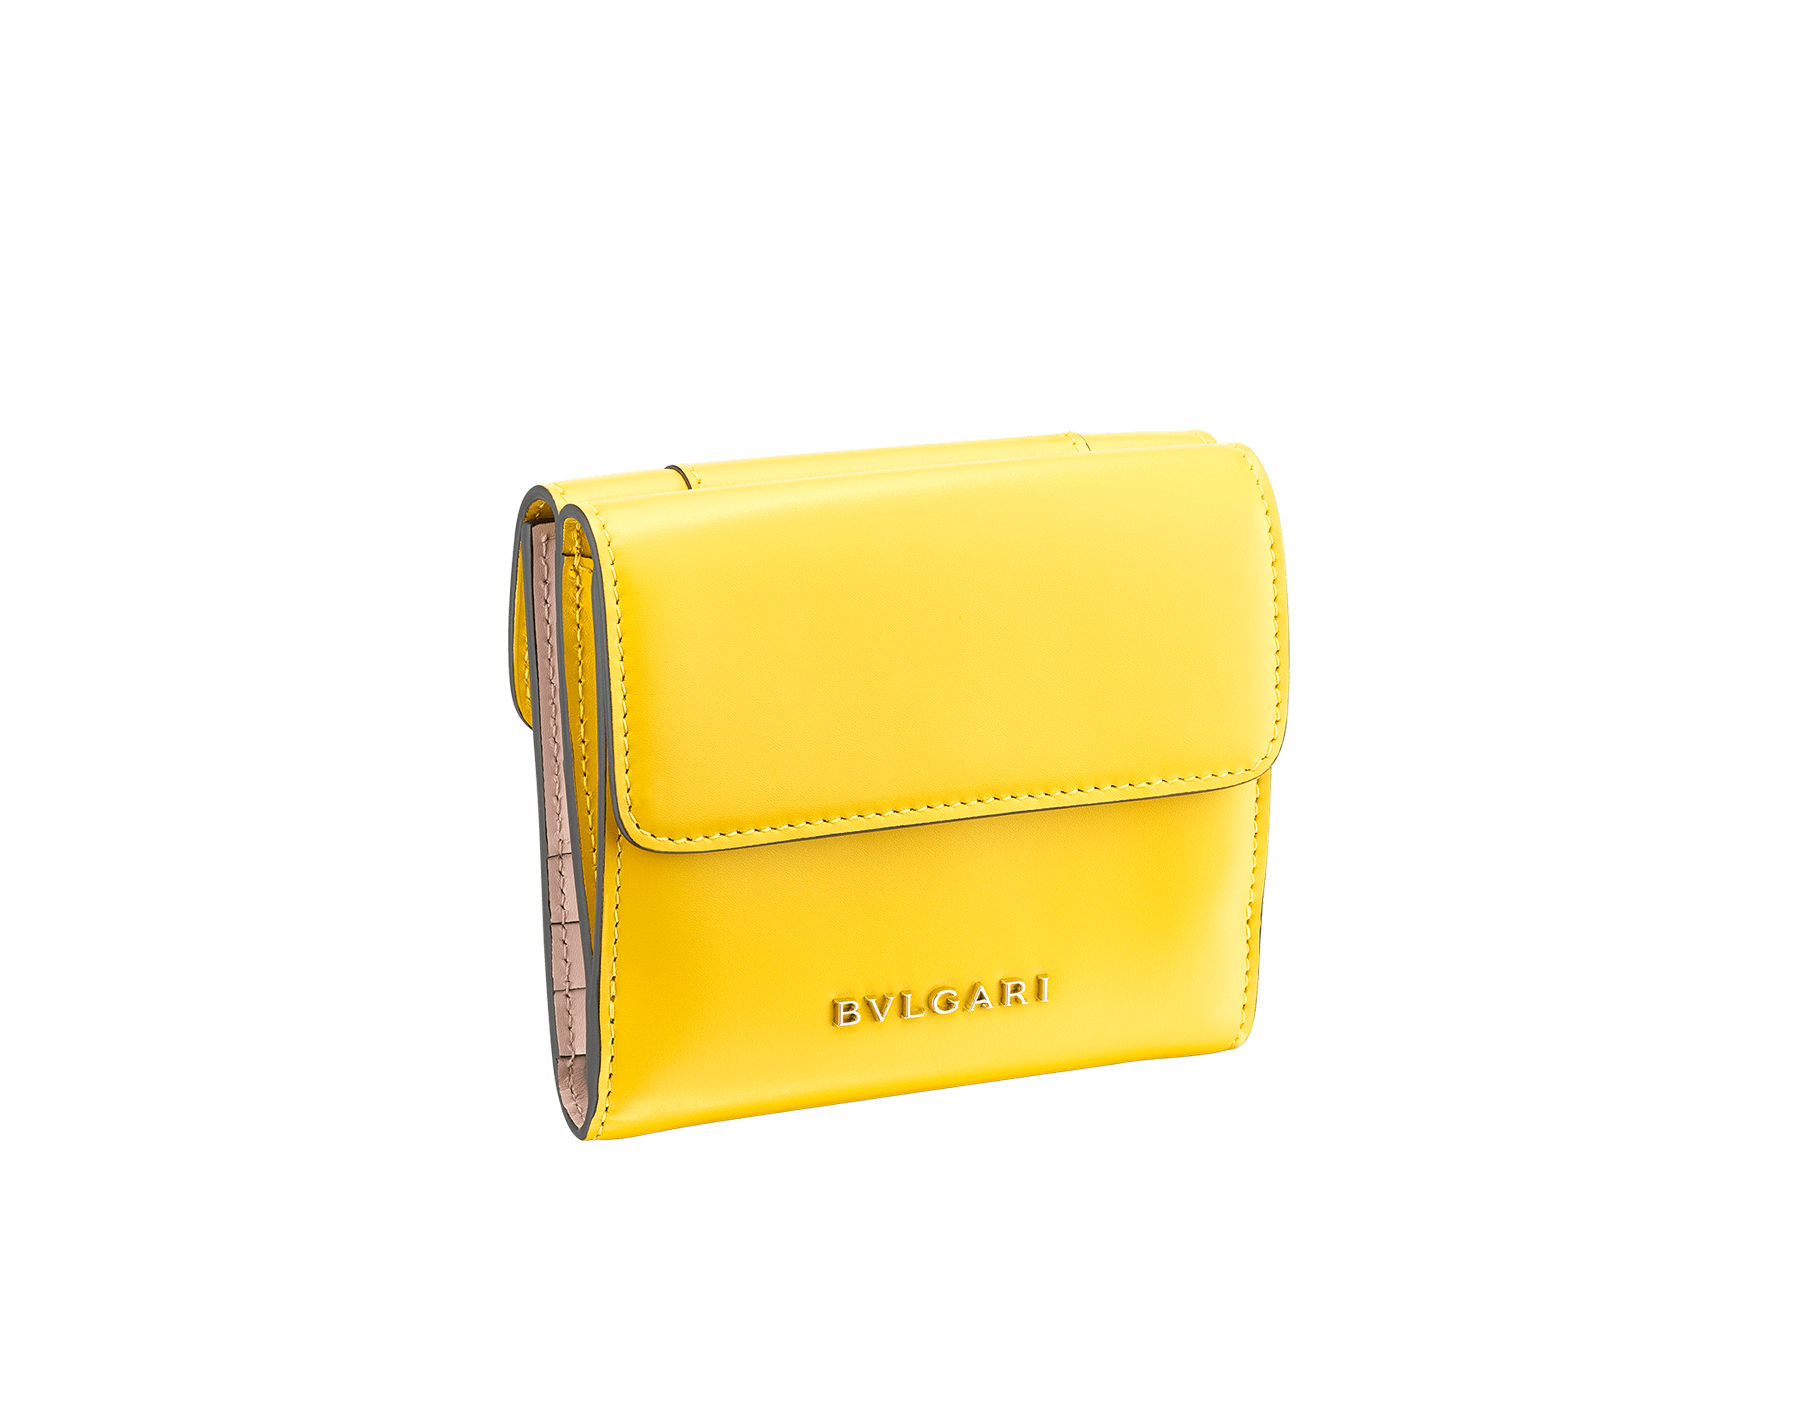 Serpenti Forever square compact wallet in daisy topaz and crystal rose calf leather. Iconic snake head stud closure in black and white agate enamel, with green malachite eyes. SEA-WLT-COMPACT-3Fa image 3